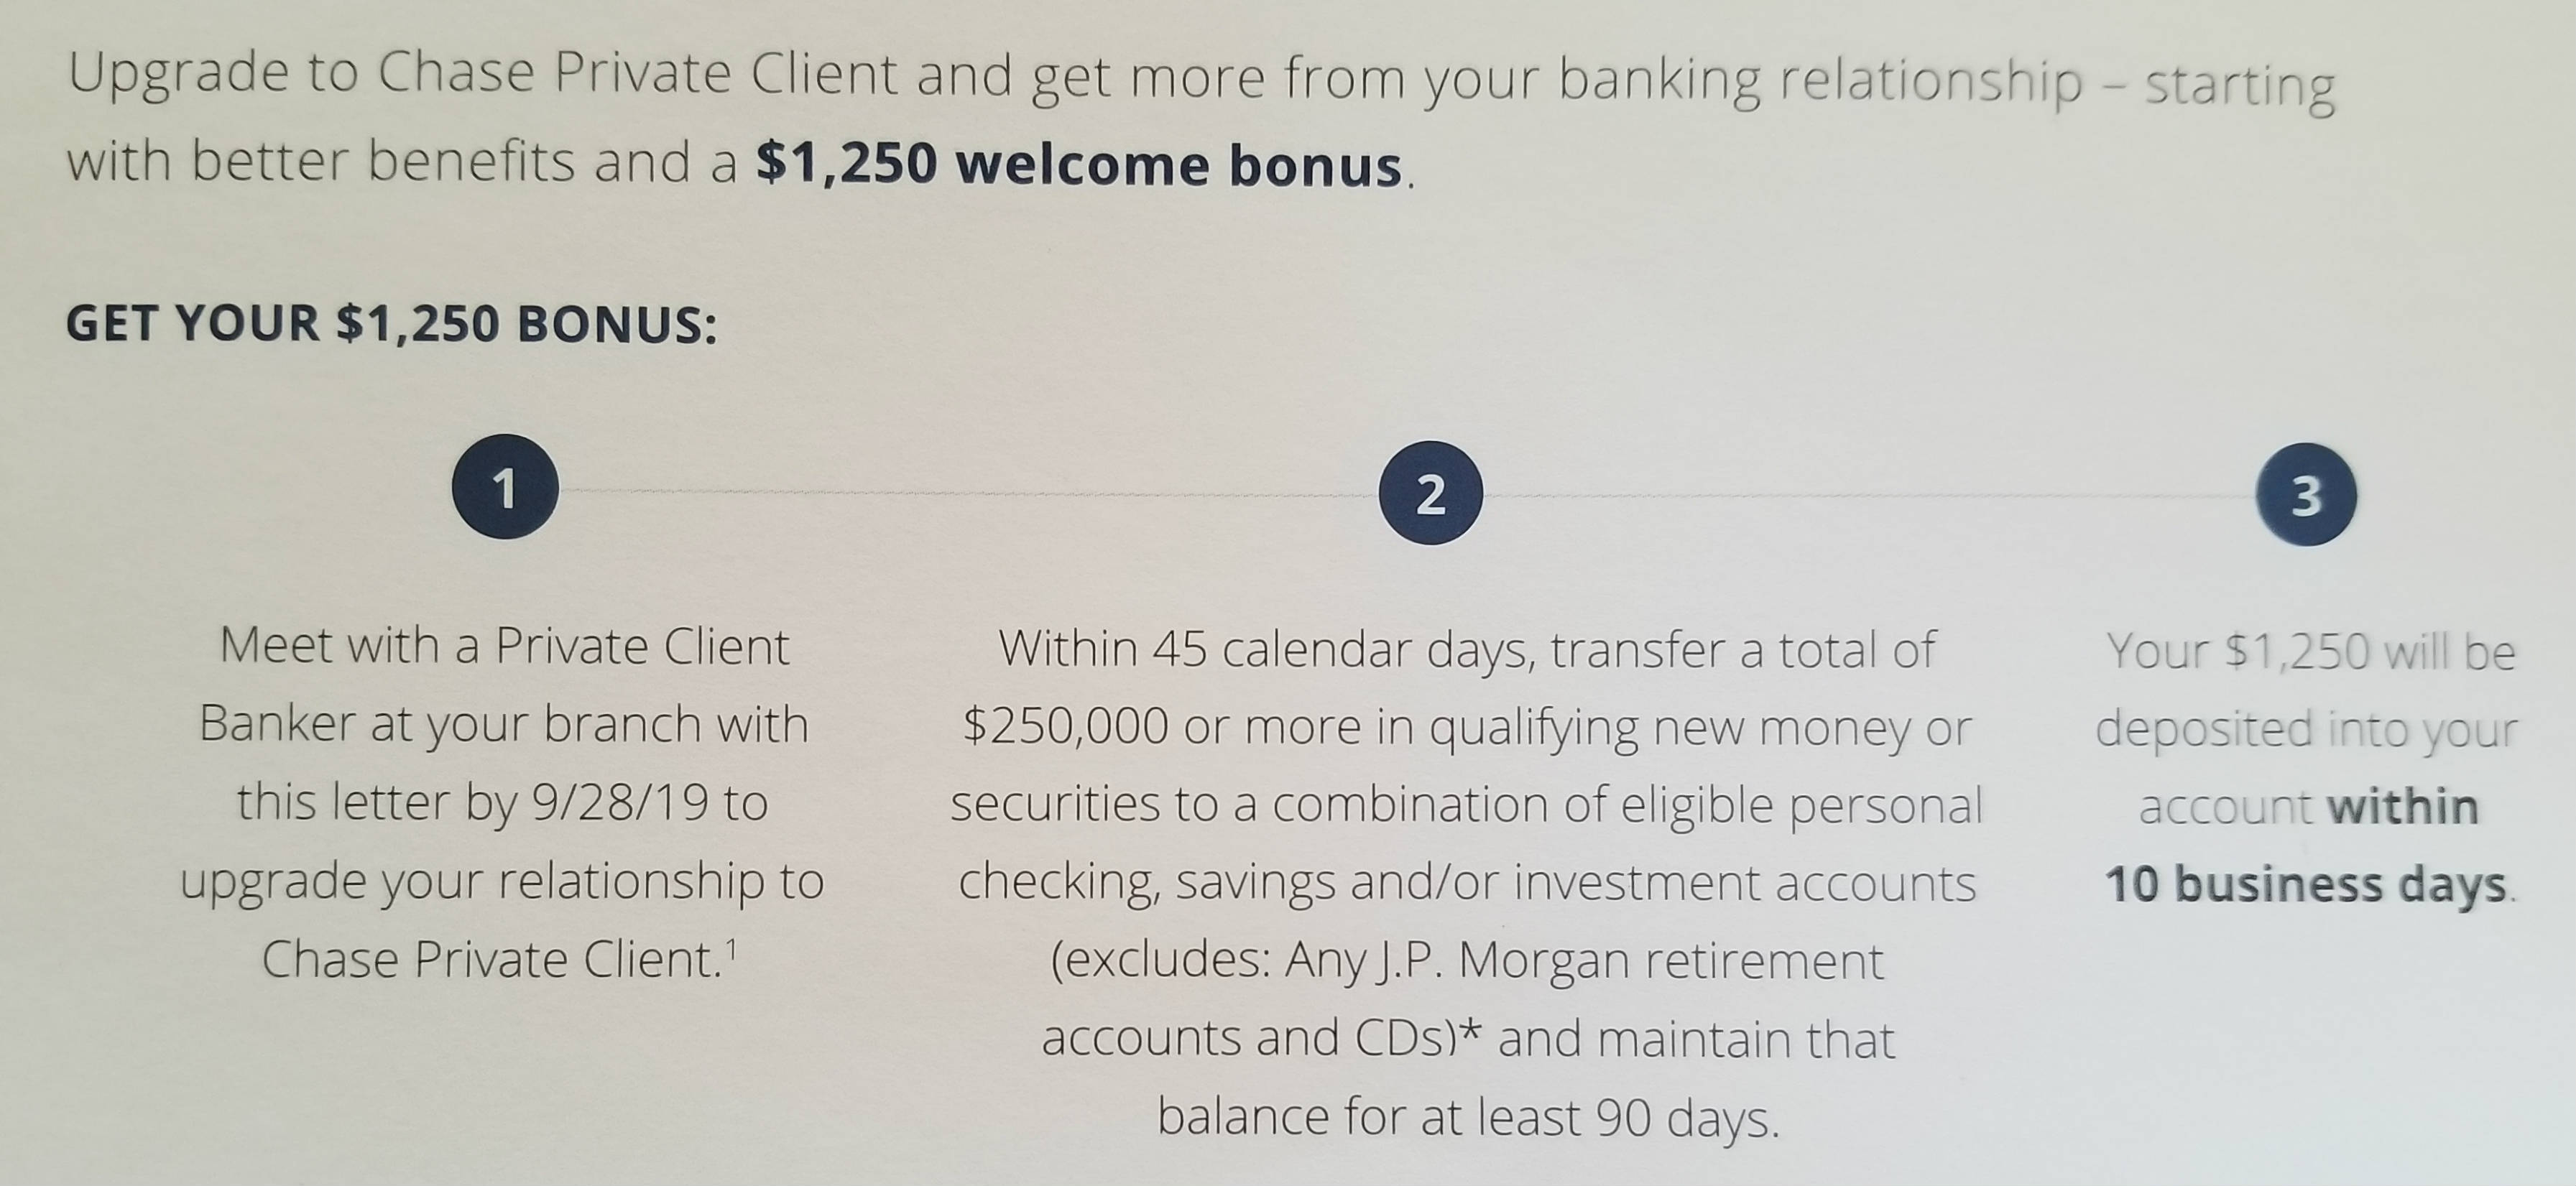 Upgrade to Chase Private Client, Get $1,250 Bonus (Targeted